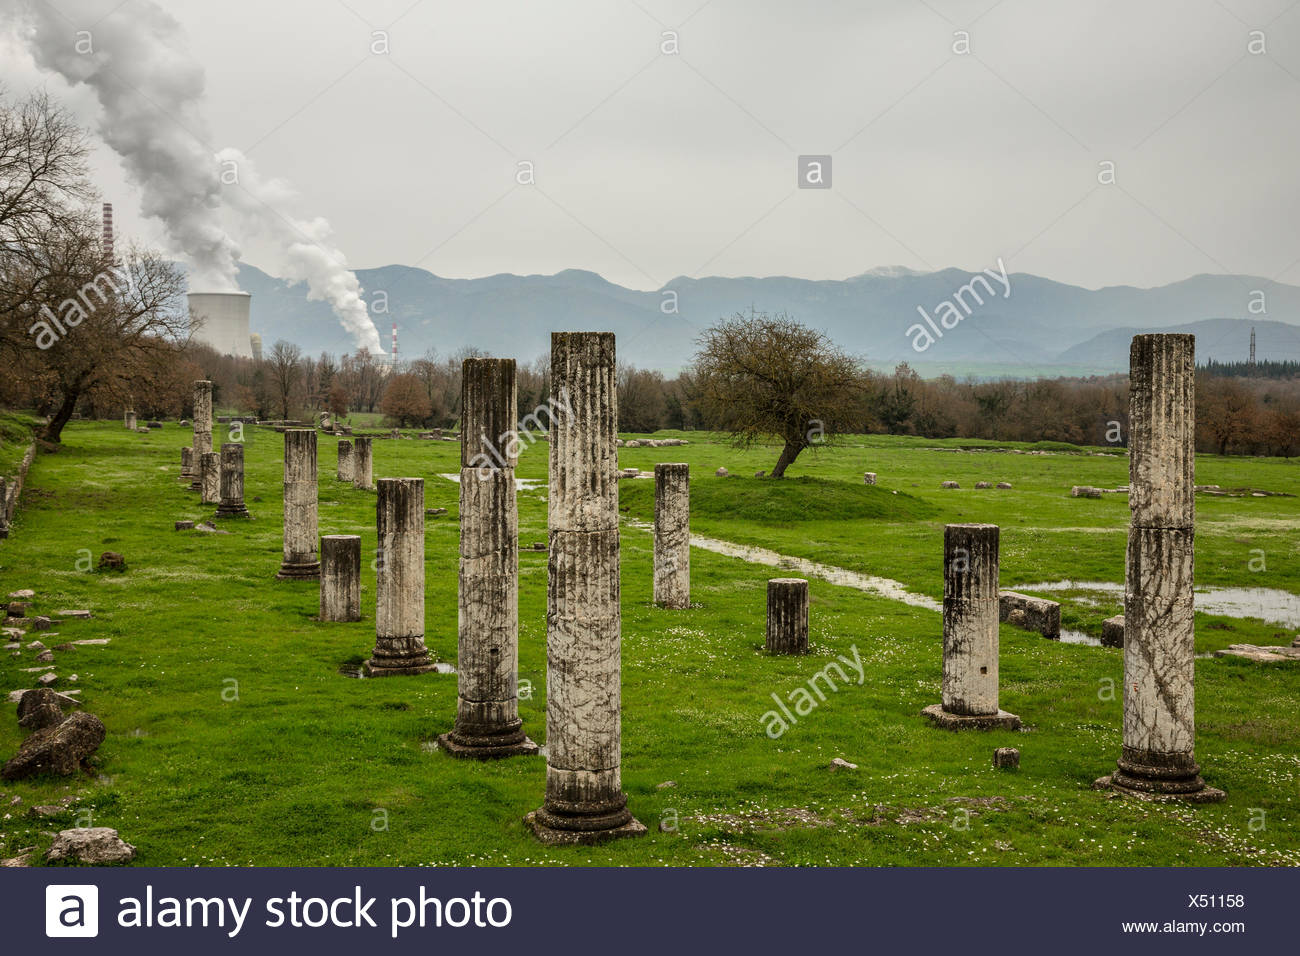 Ancient Greek ruins near a power plant. - Stock Image